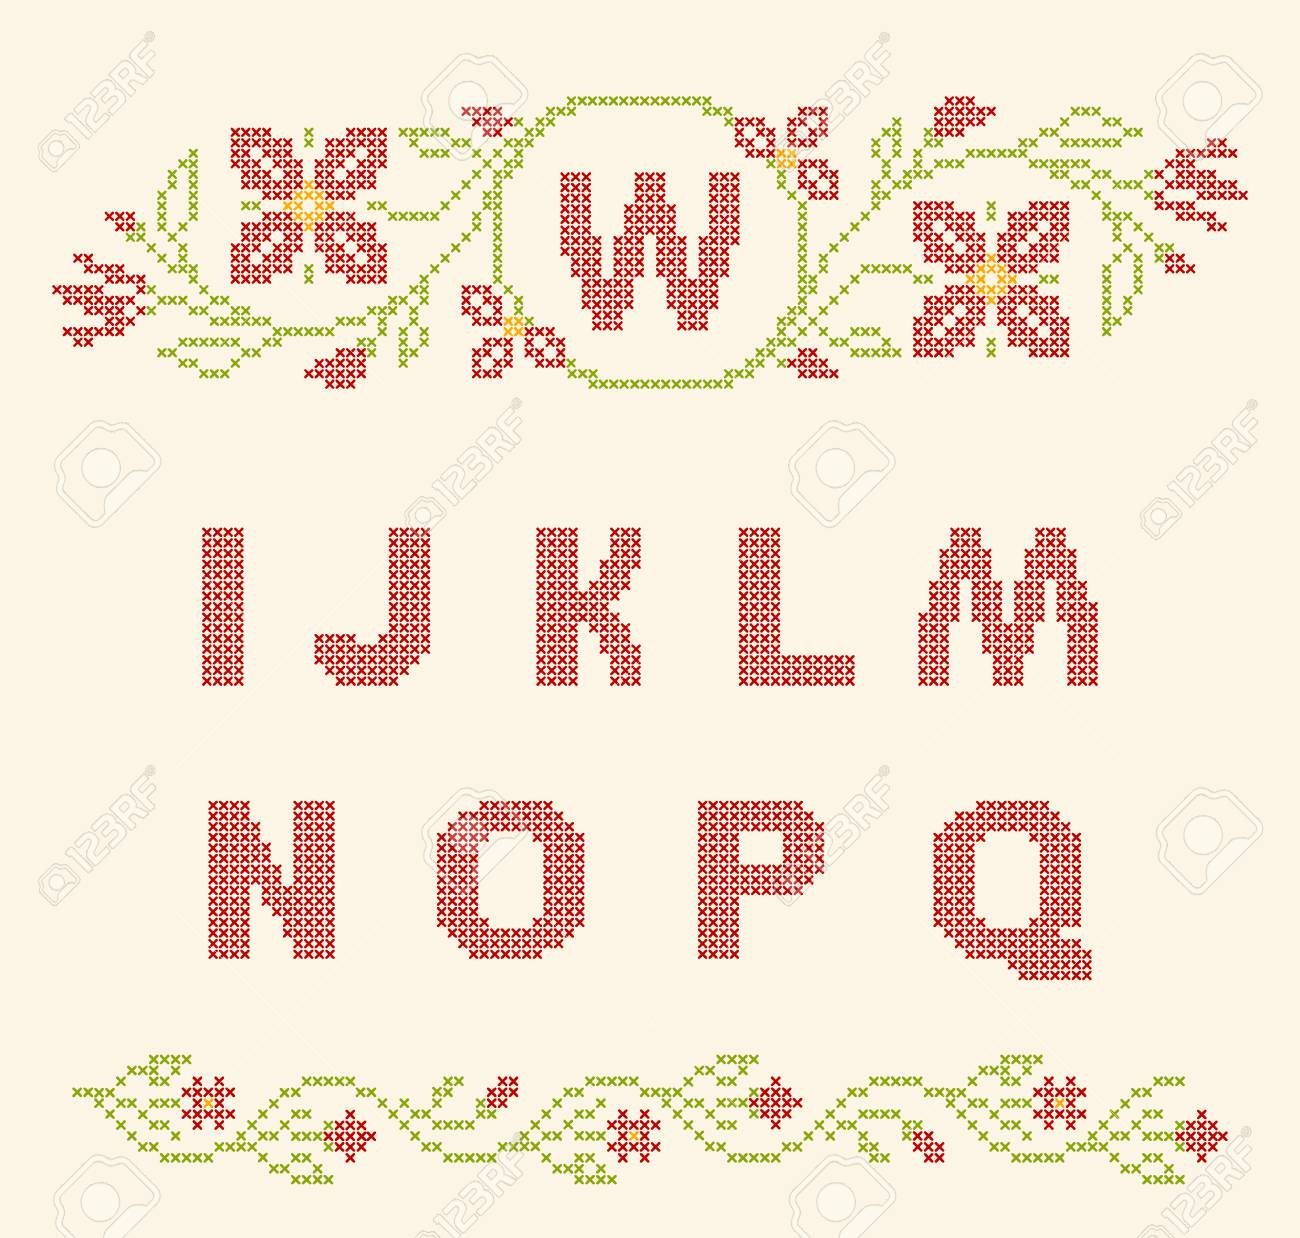 9ed94212752 Design Elements For Cross-stitch Embroidery. Red And Green